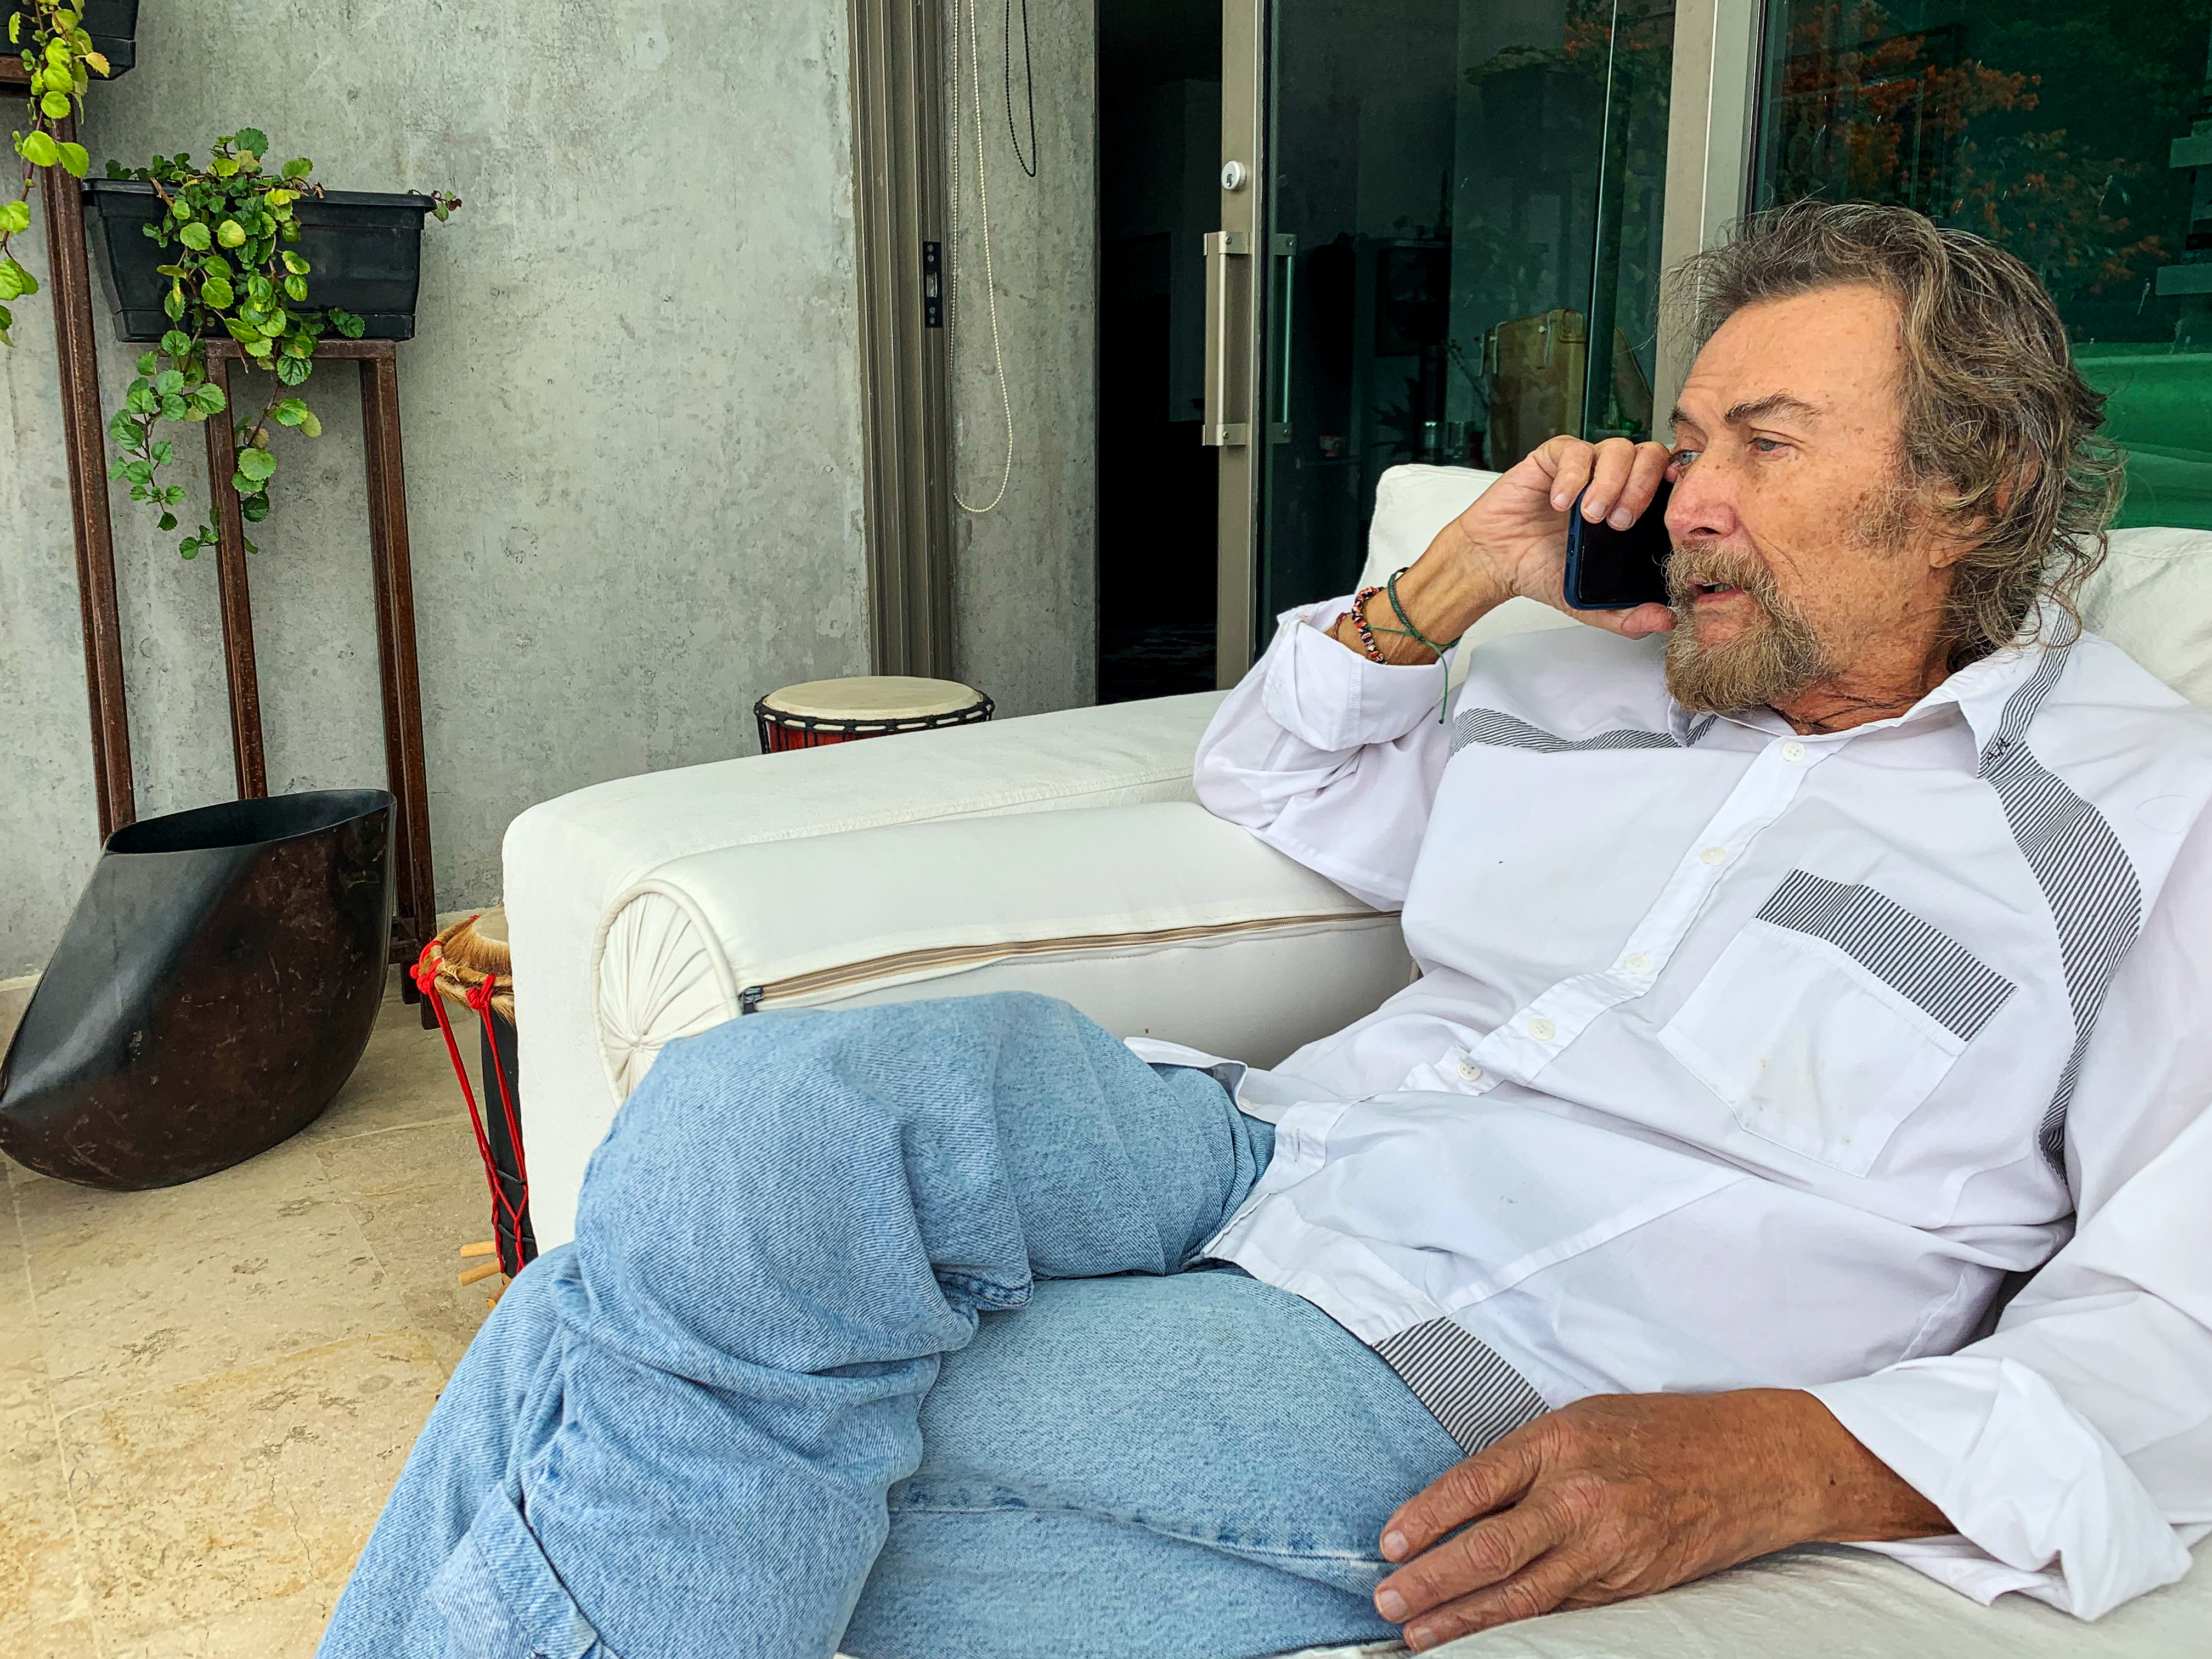 Diego Angel sits outside while talking on the phone